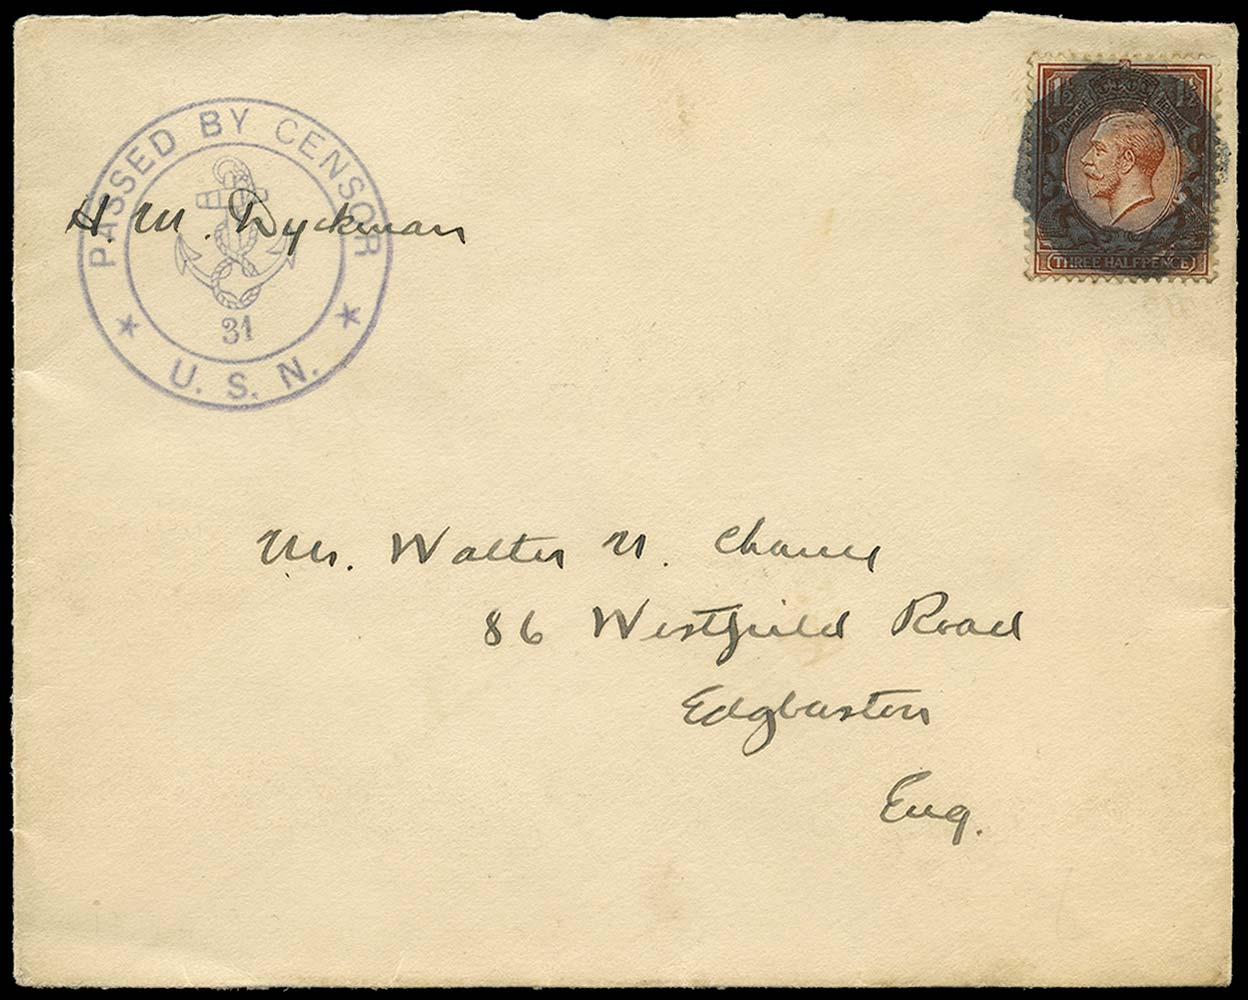 GB c.1918  SG362 Cover censored by U.S. Navy